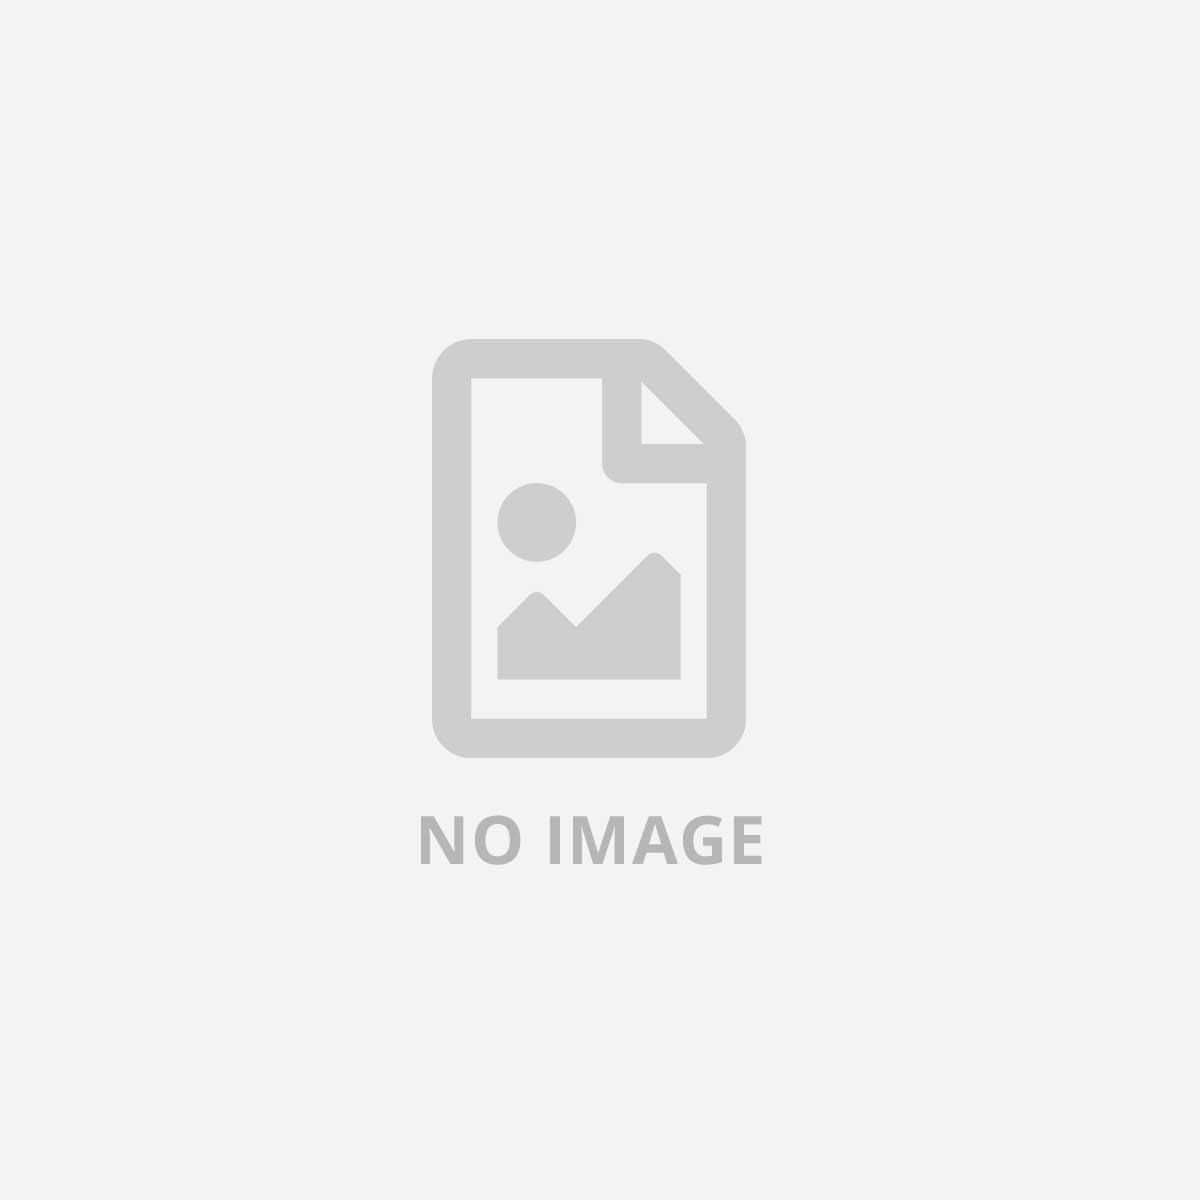 TOSHIBA HDD INTERNO 2 5P 500GB 8MB 5400R